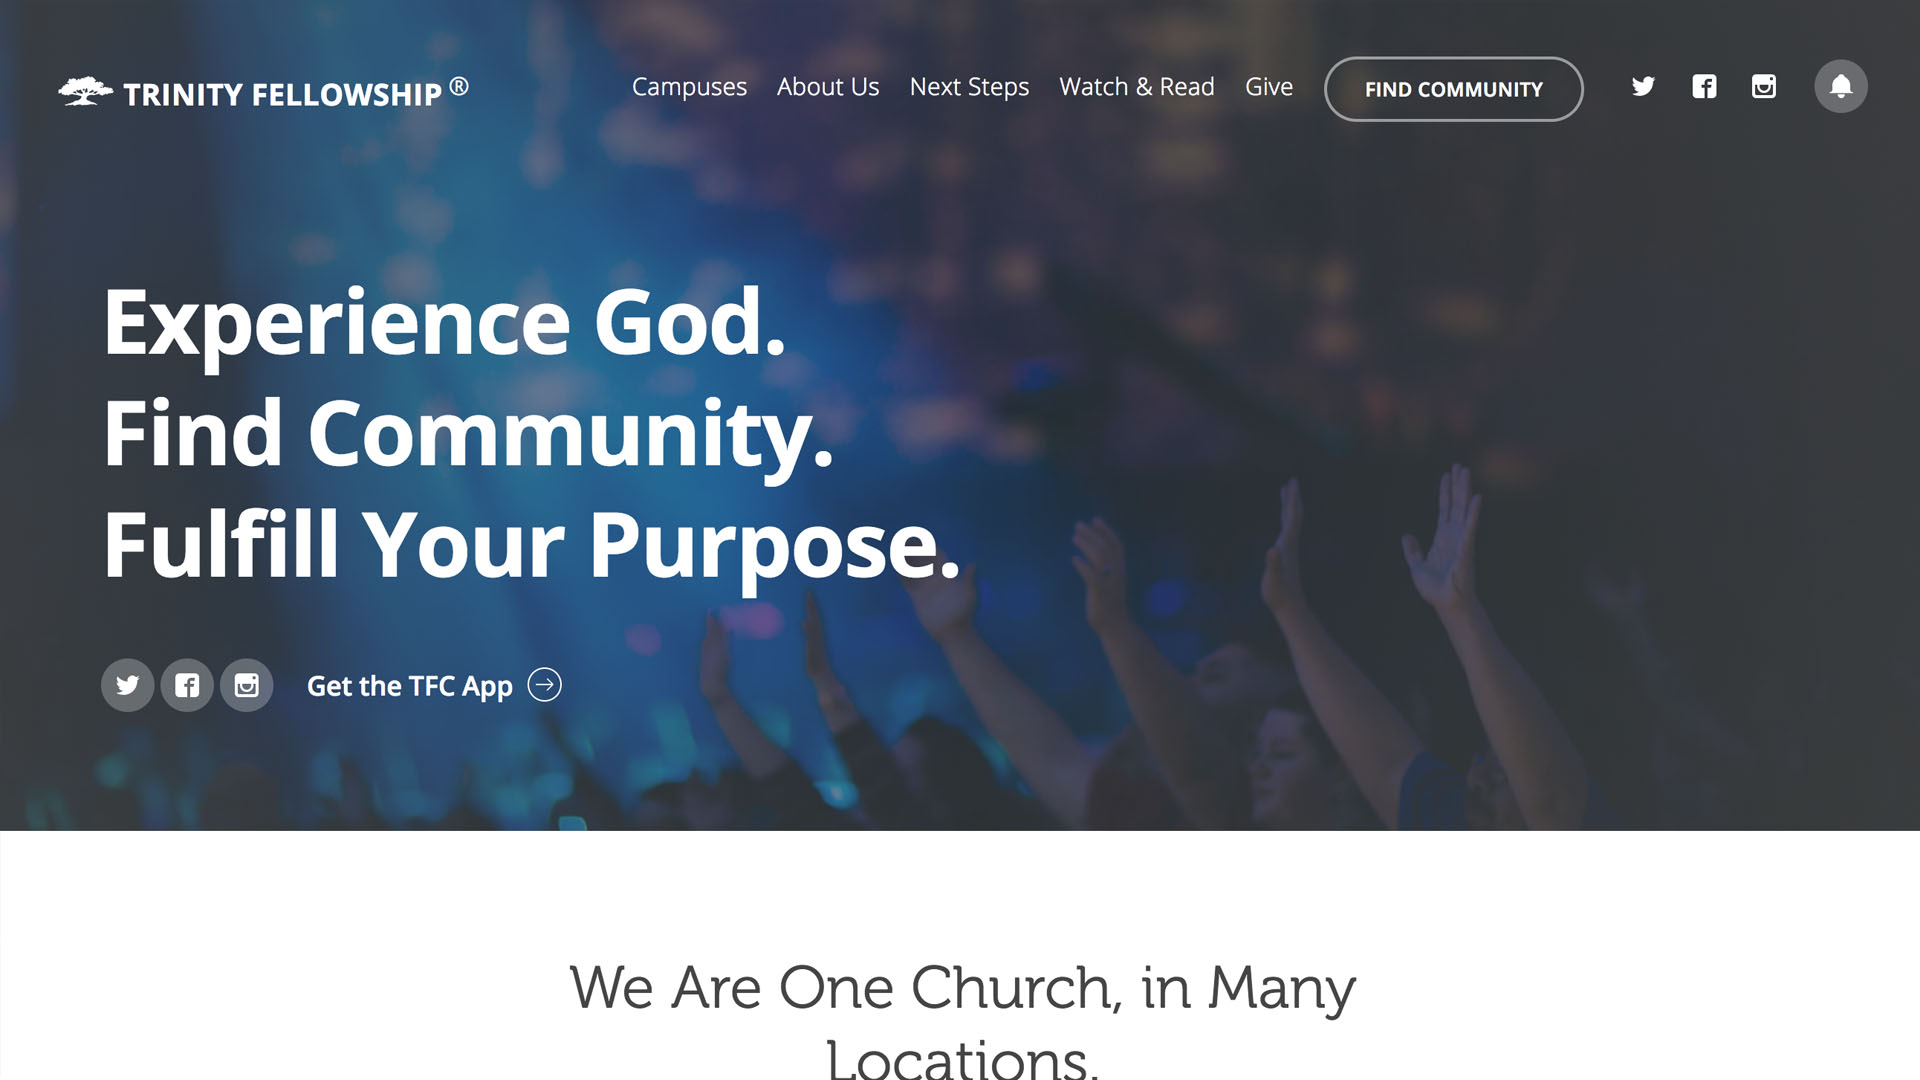 Trinity Fellowship - https://tfc.org/